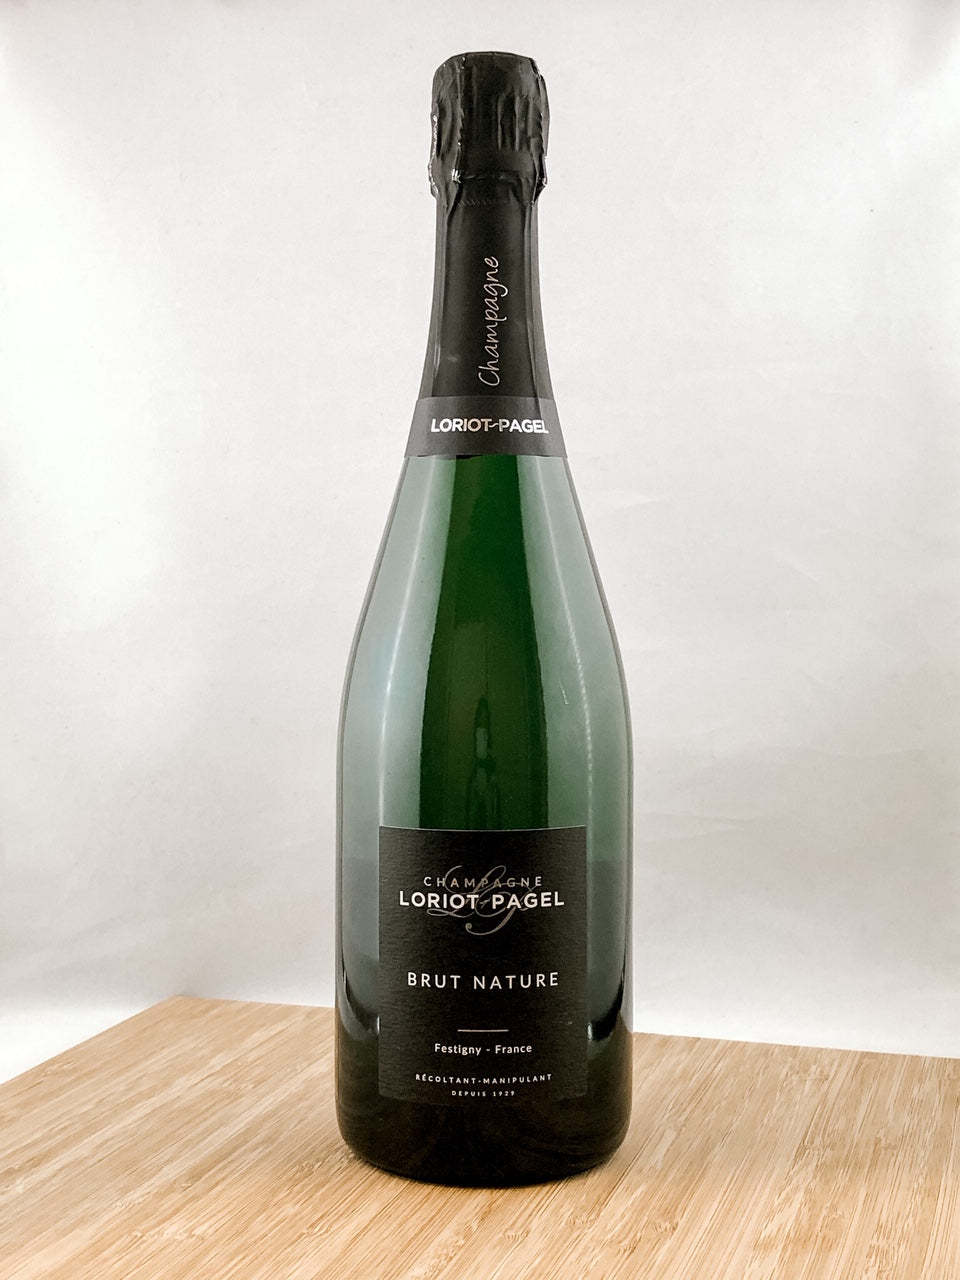 Loriot-Pagel Champagne, part of our champagne delivery and great for unique gift ideas.